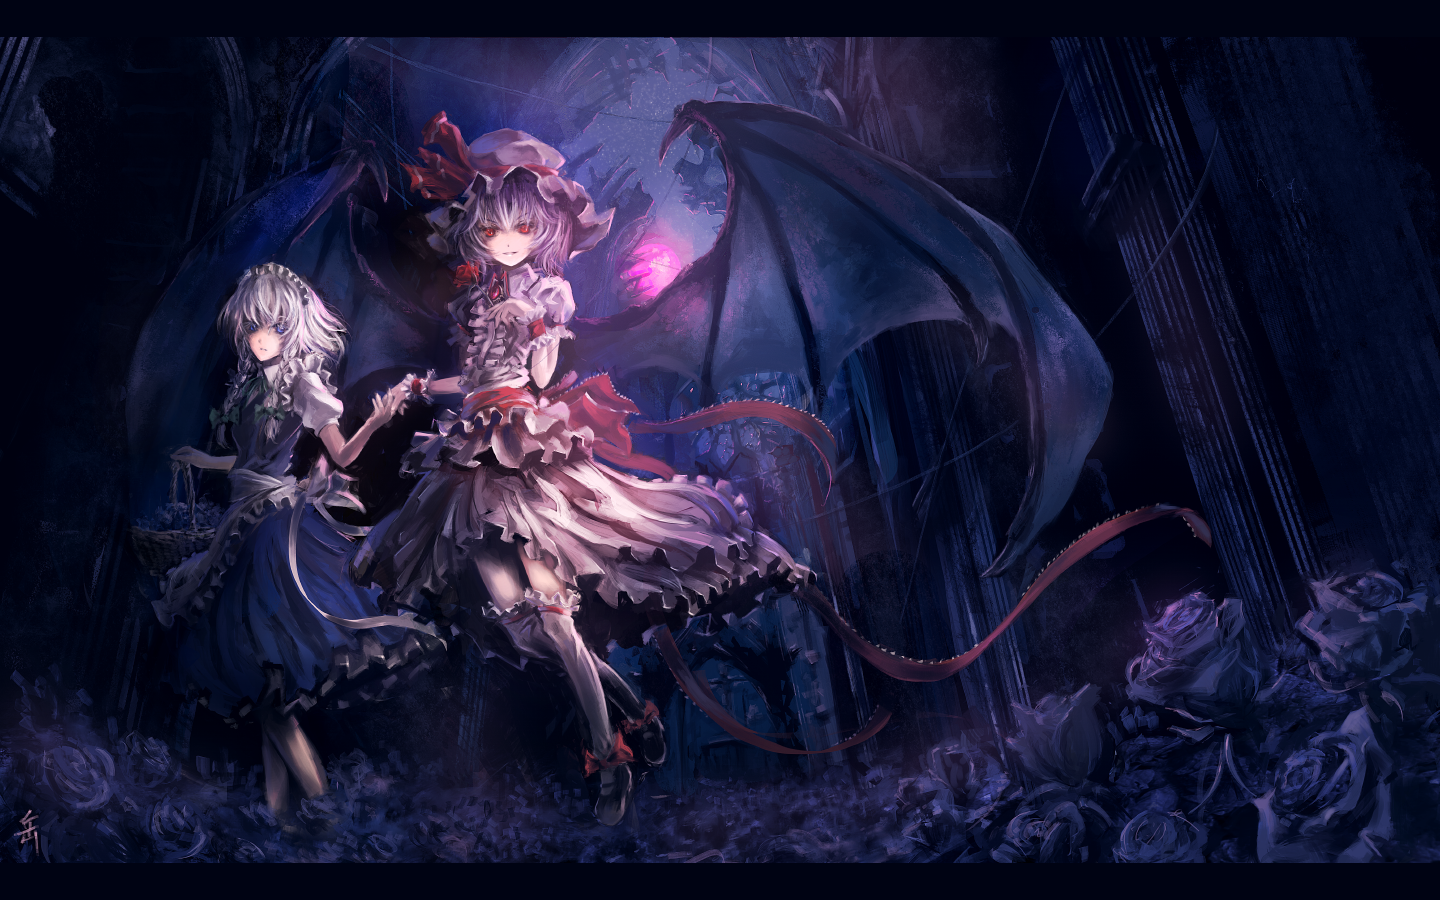 Being a vampire, Remilia is something of a night owl. She